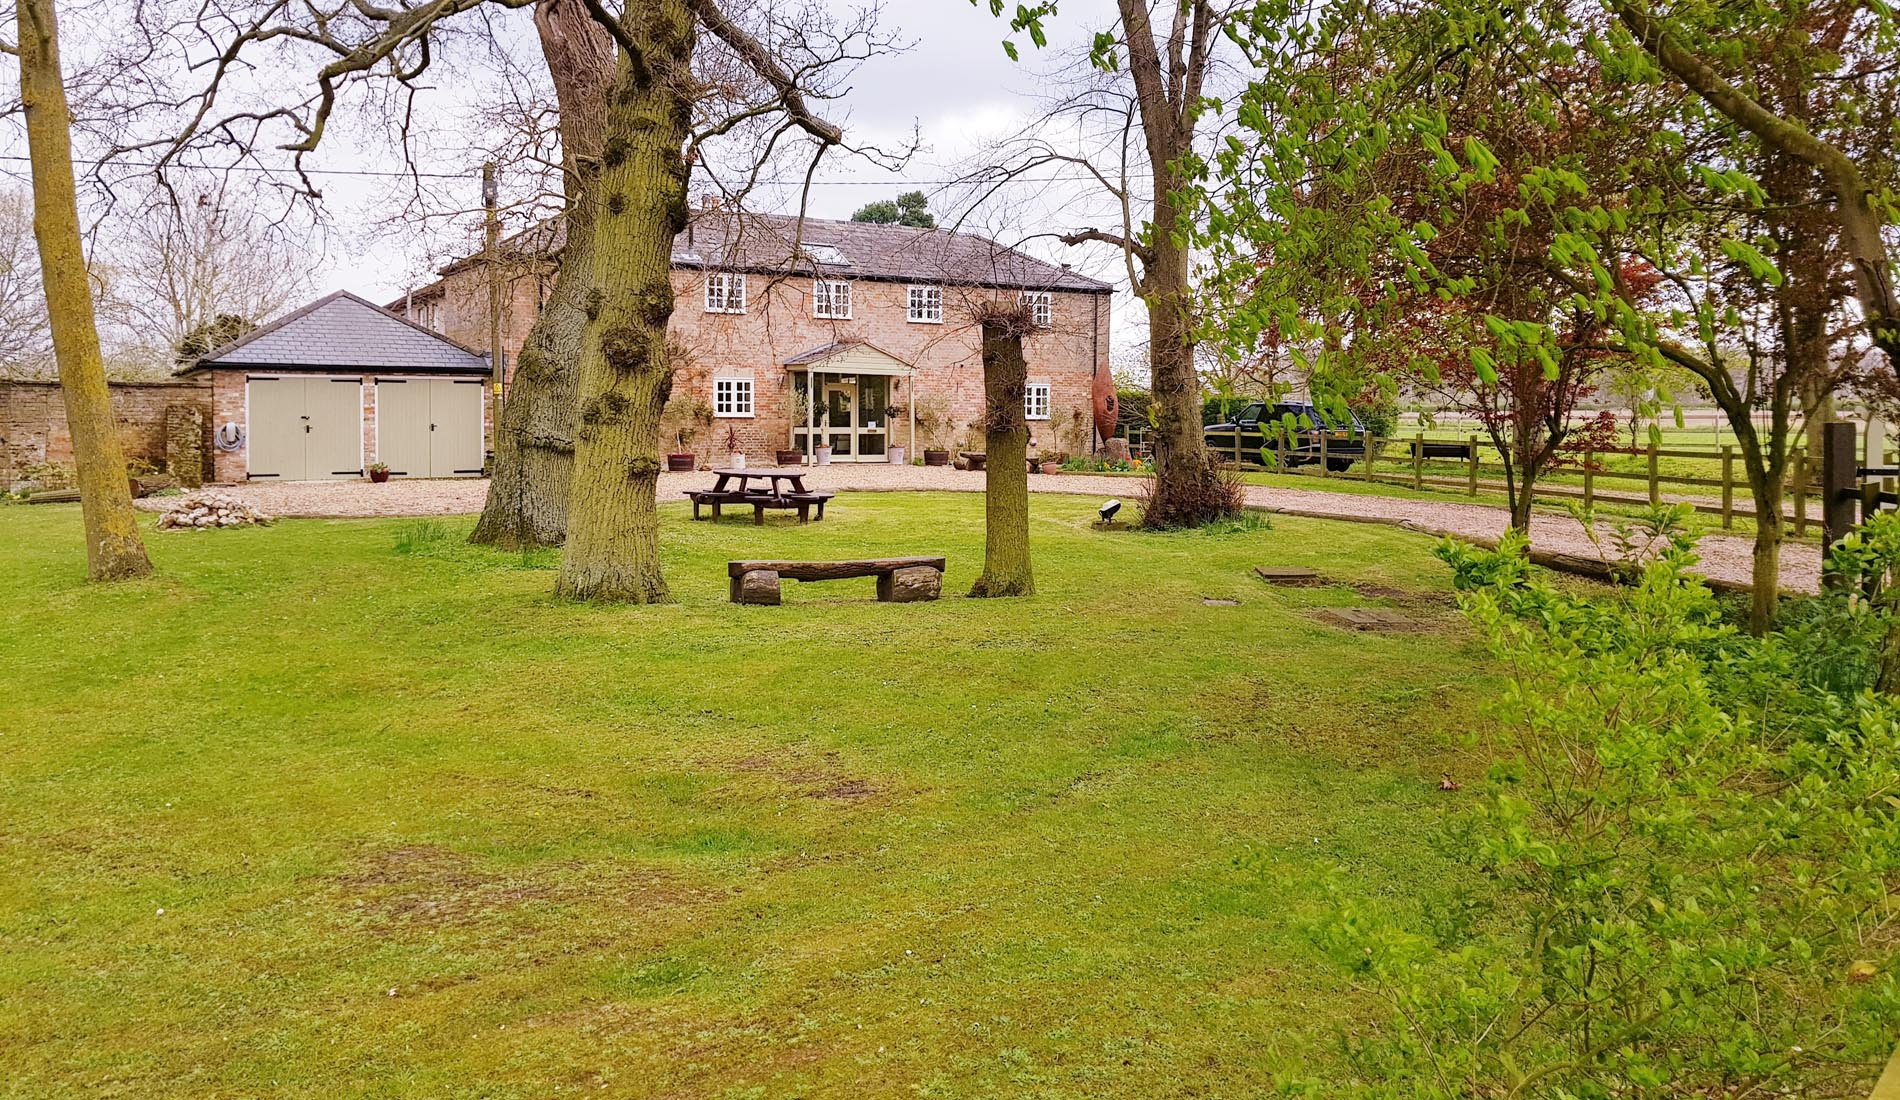 Hilgay, Thetford Forest country house group accommodation for 8, 9, 10, 11